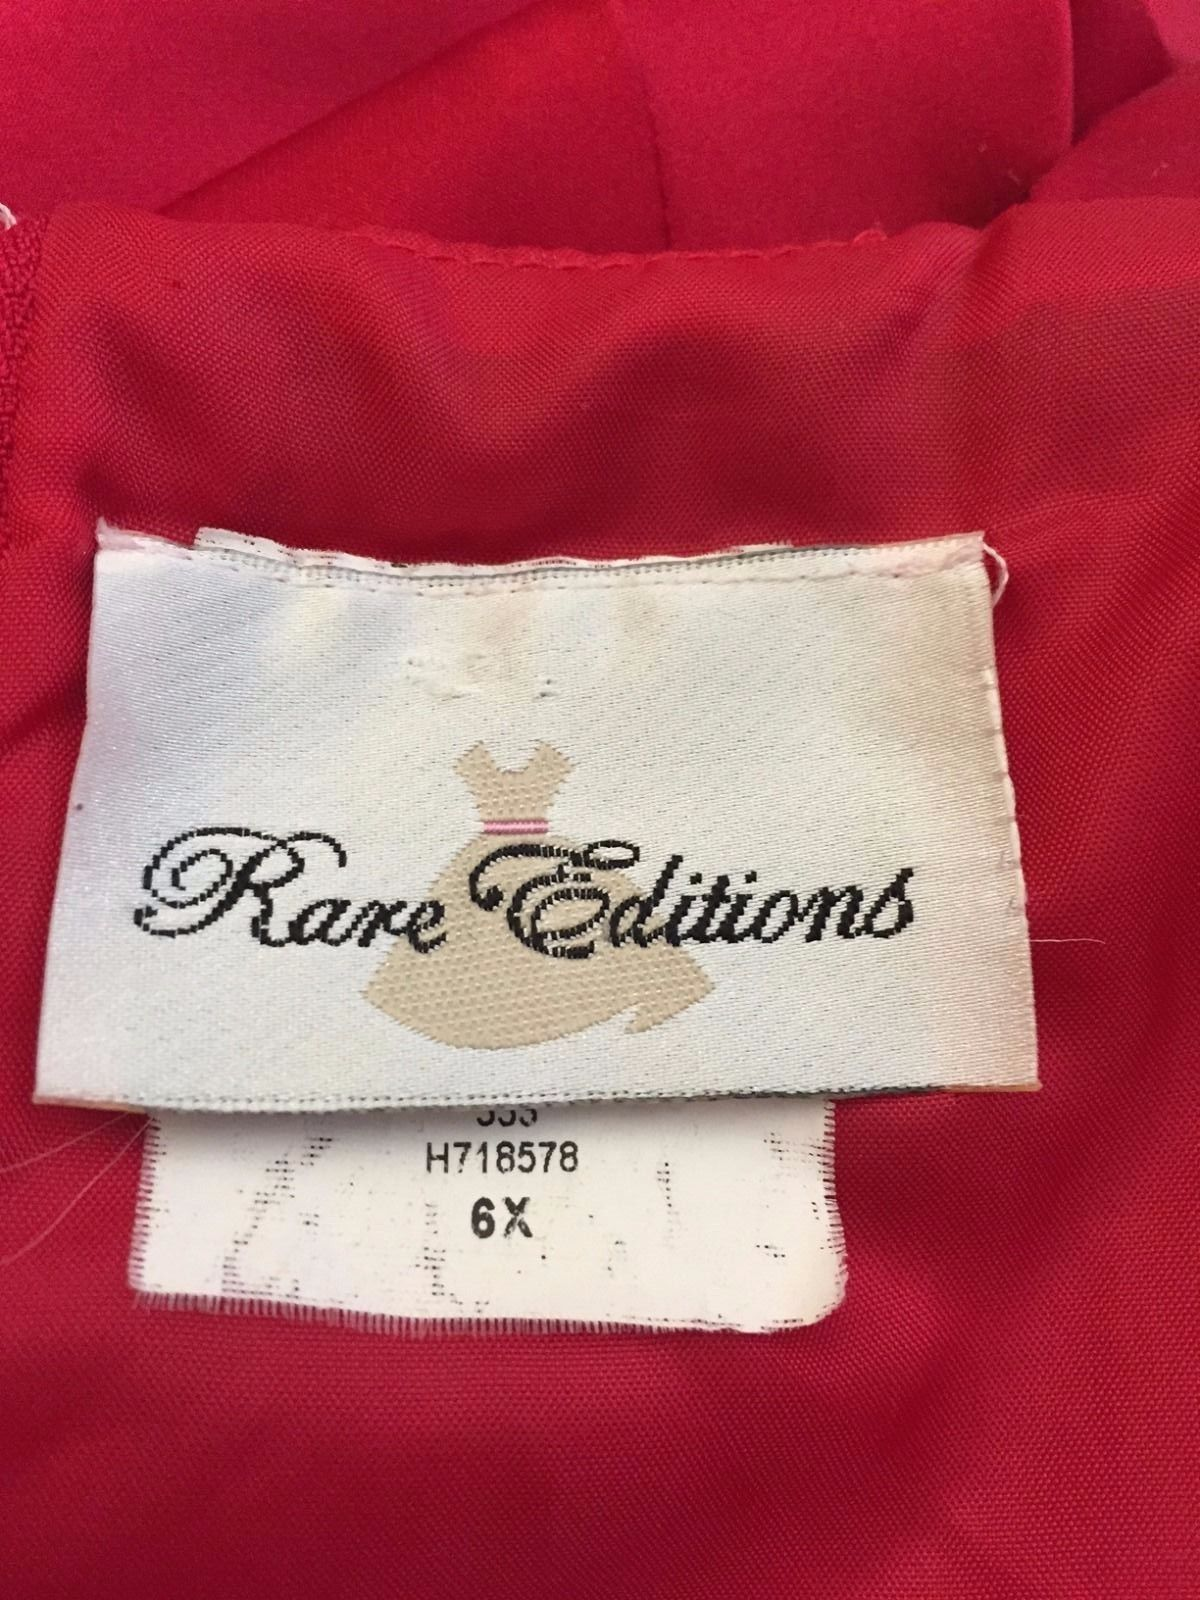 Rare Editions Girl's Red Dress w/ Sequins on Shoulder Size 6X